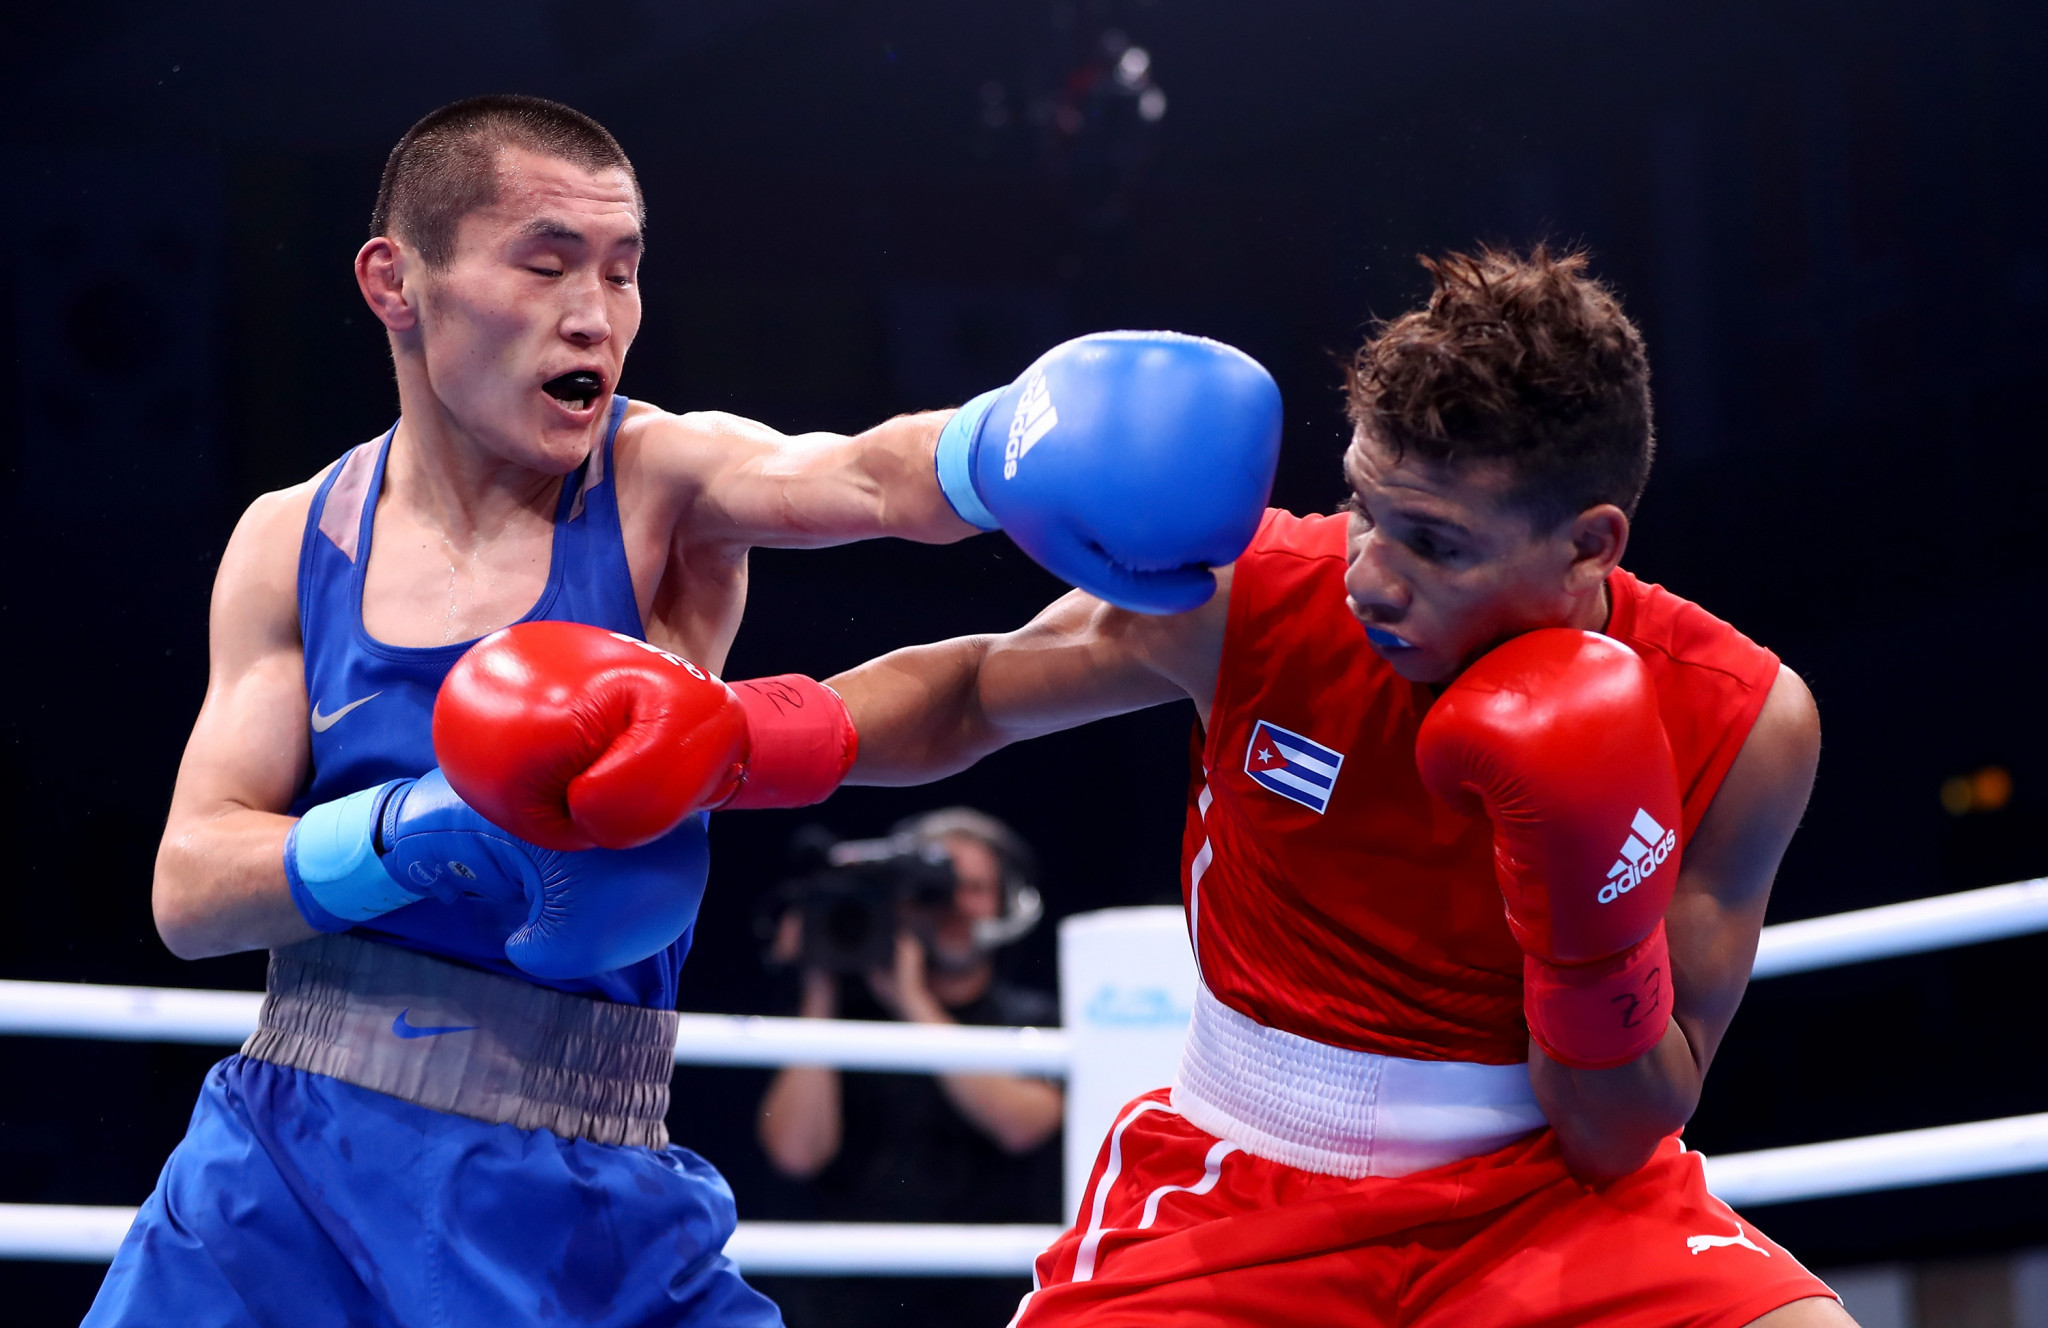 Russian World Championship bronze medallist boxer handed two-year doping ban